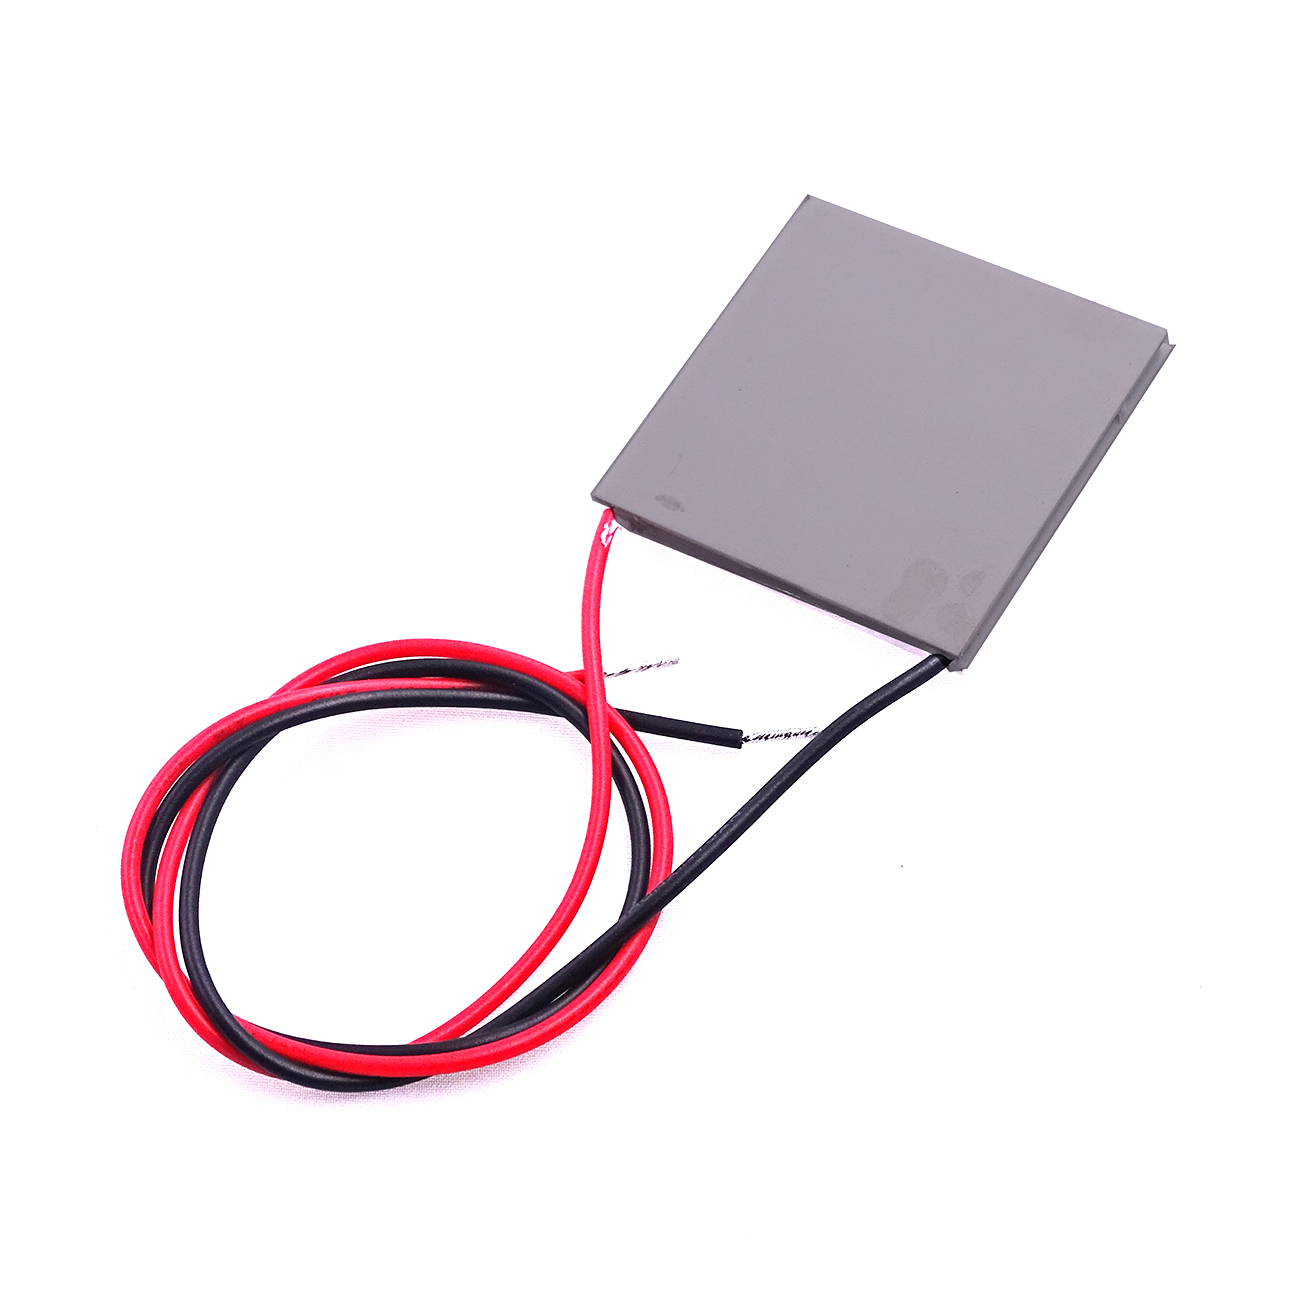 Image 3 - 60pcs 100% New the cheapest price TEC1 12705 TEC  12705 42.5W 15.4V 5A TEC Thermoelectric Cooler Peltier (TEC1 12705)(one box)-in Integrated Circuits from Electronic Components & Supplies